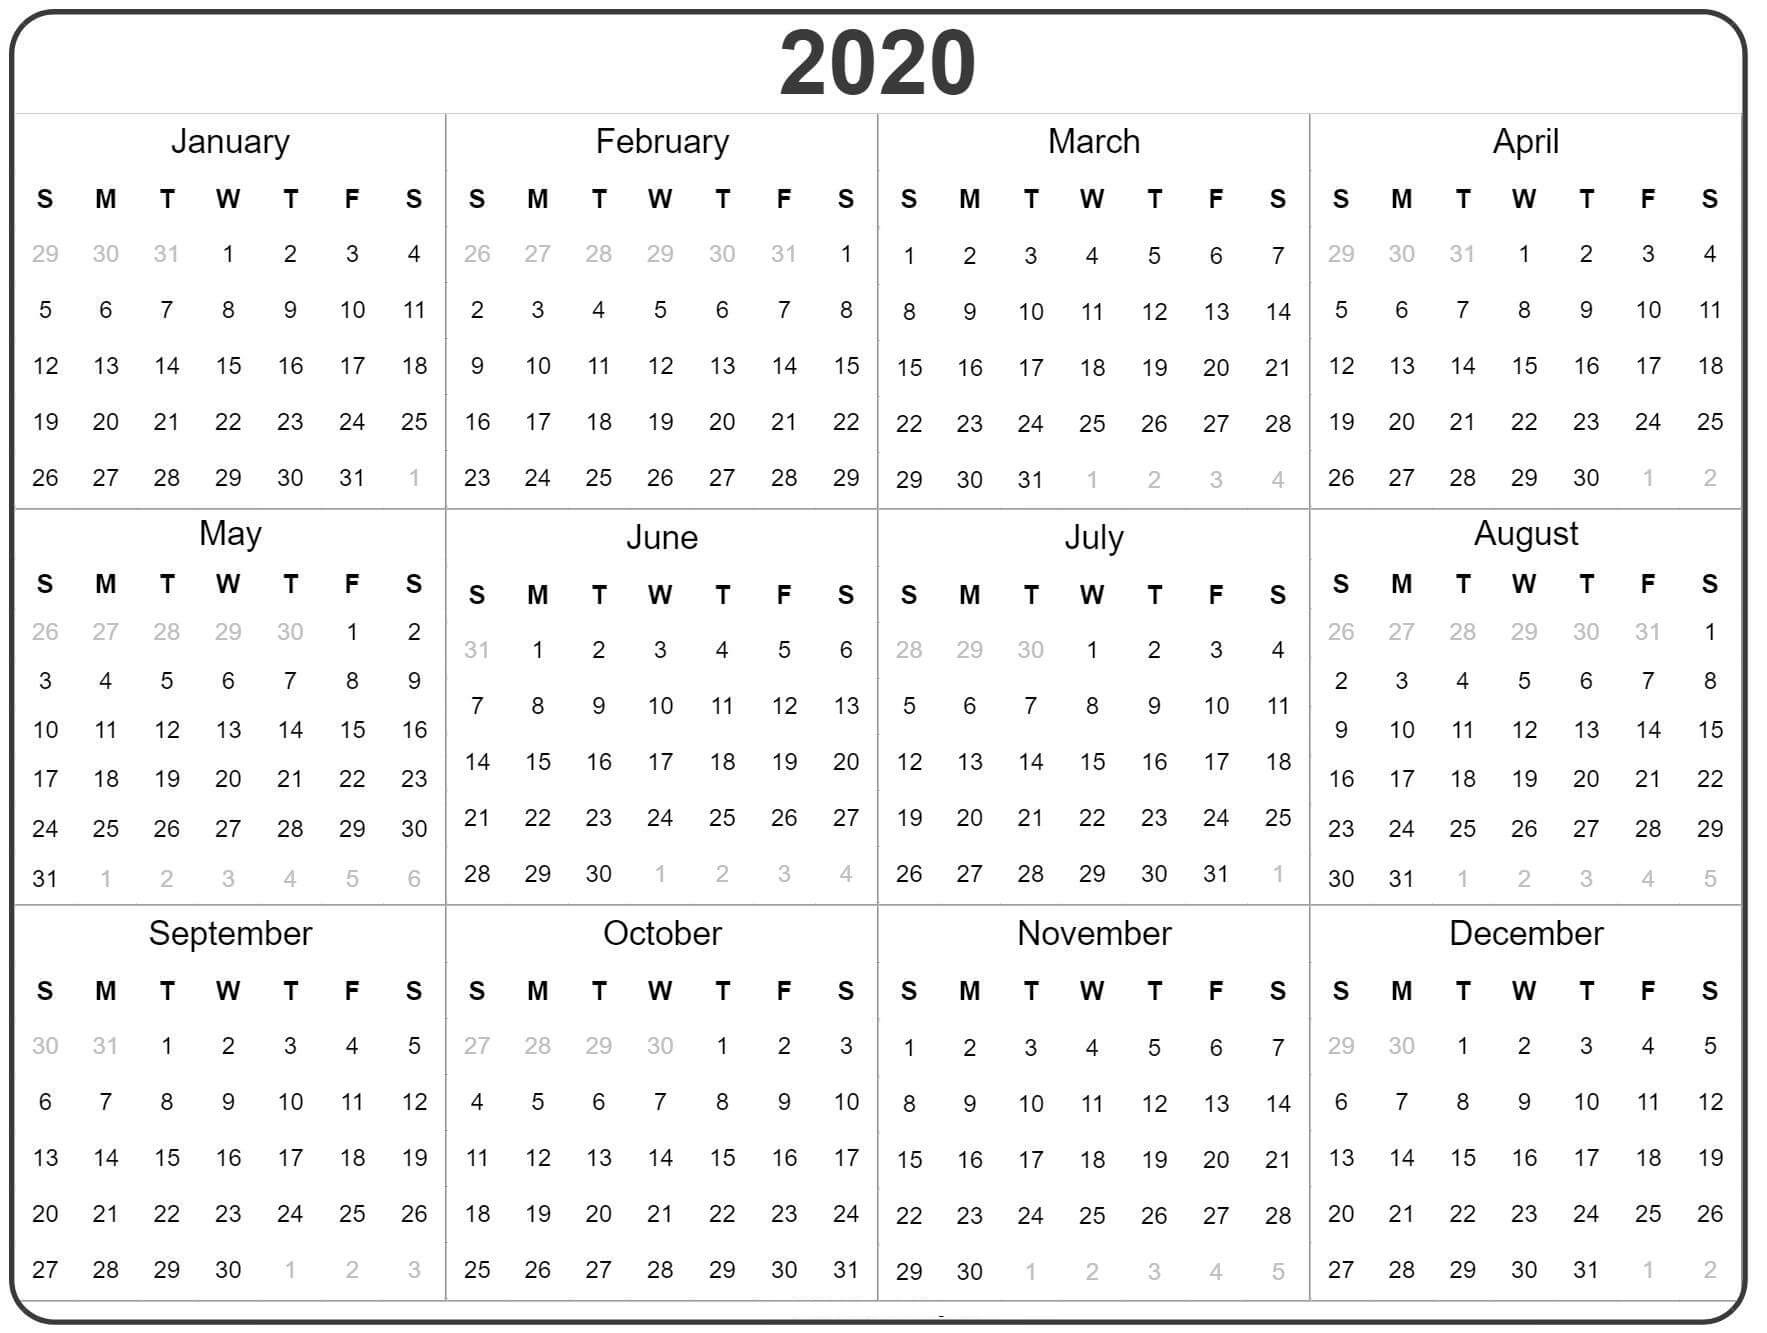 Free Yearly Calendar 2020 With Notes - 2019 Calendars For Extraordinary Calendars For The Whole Year